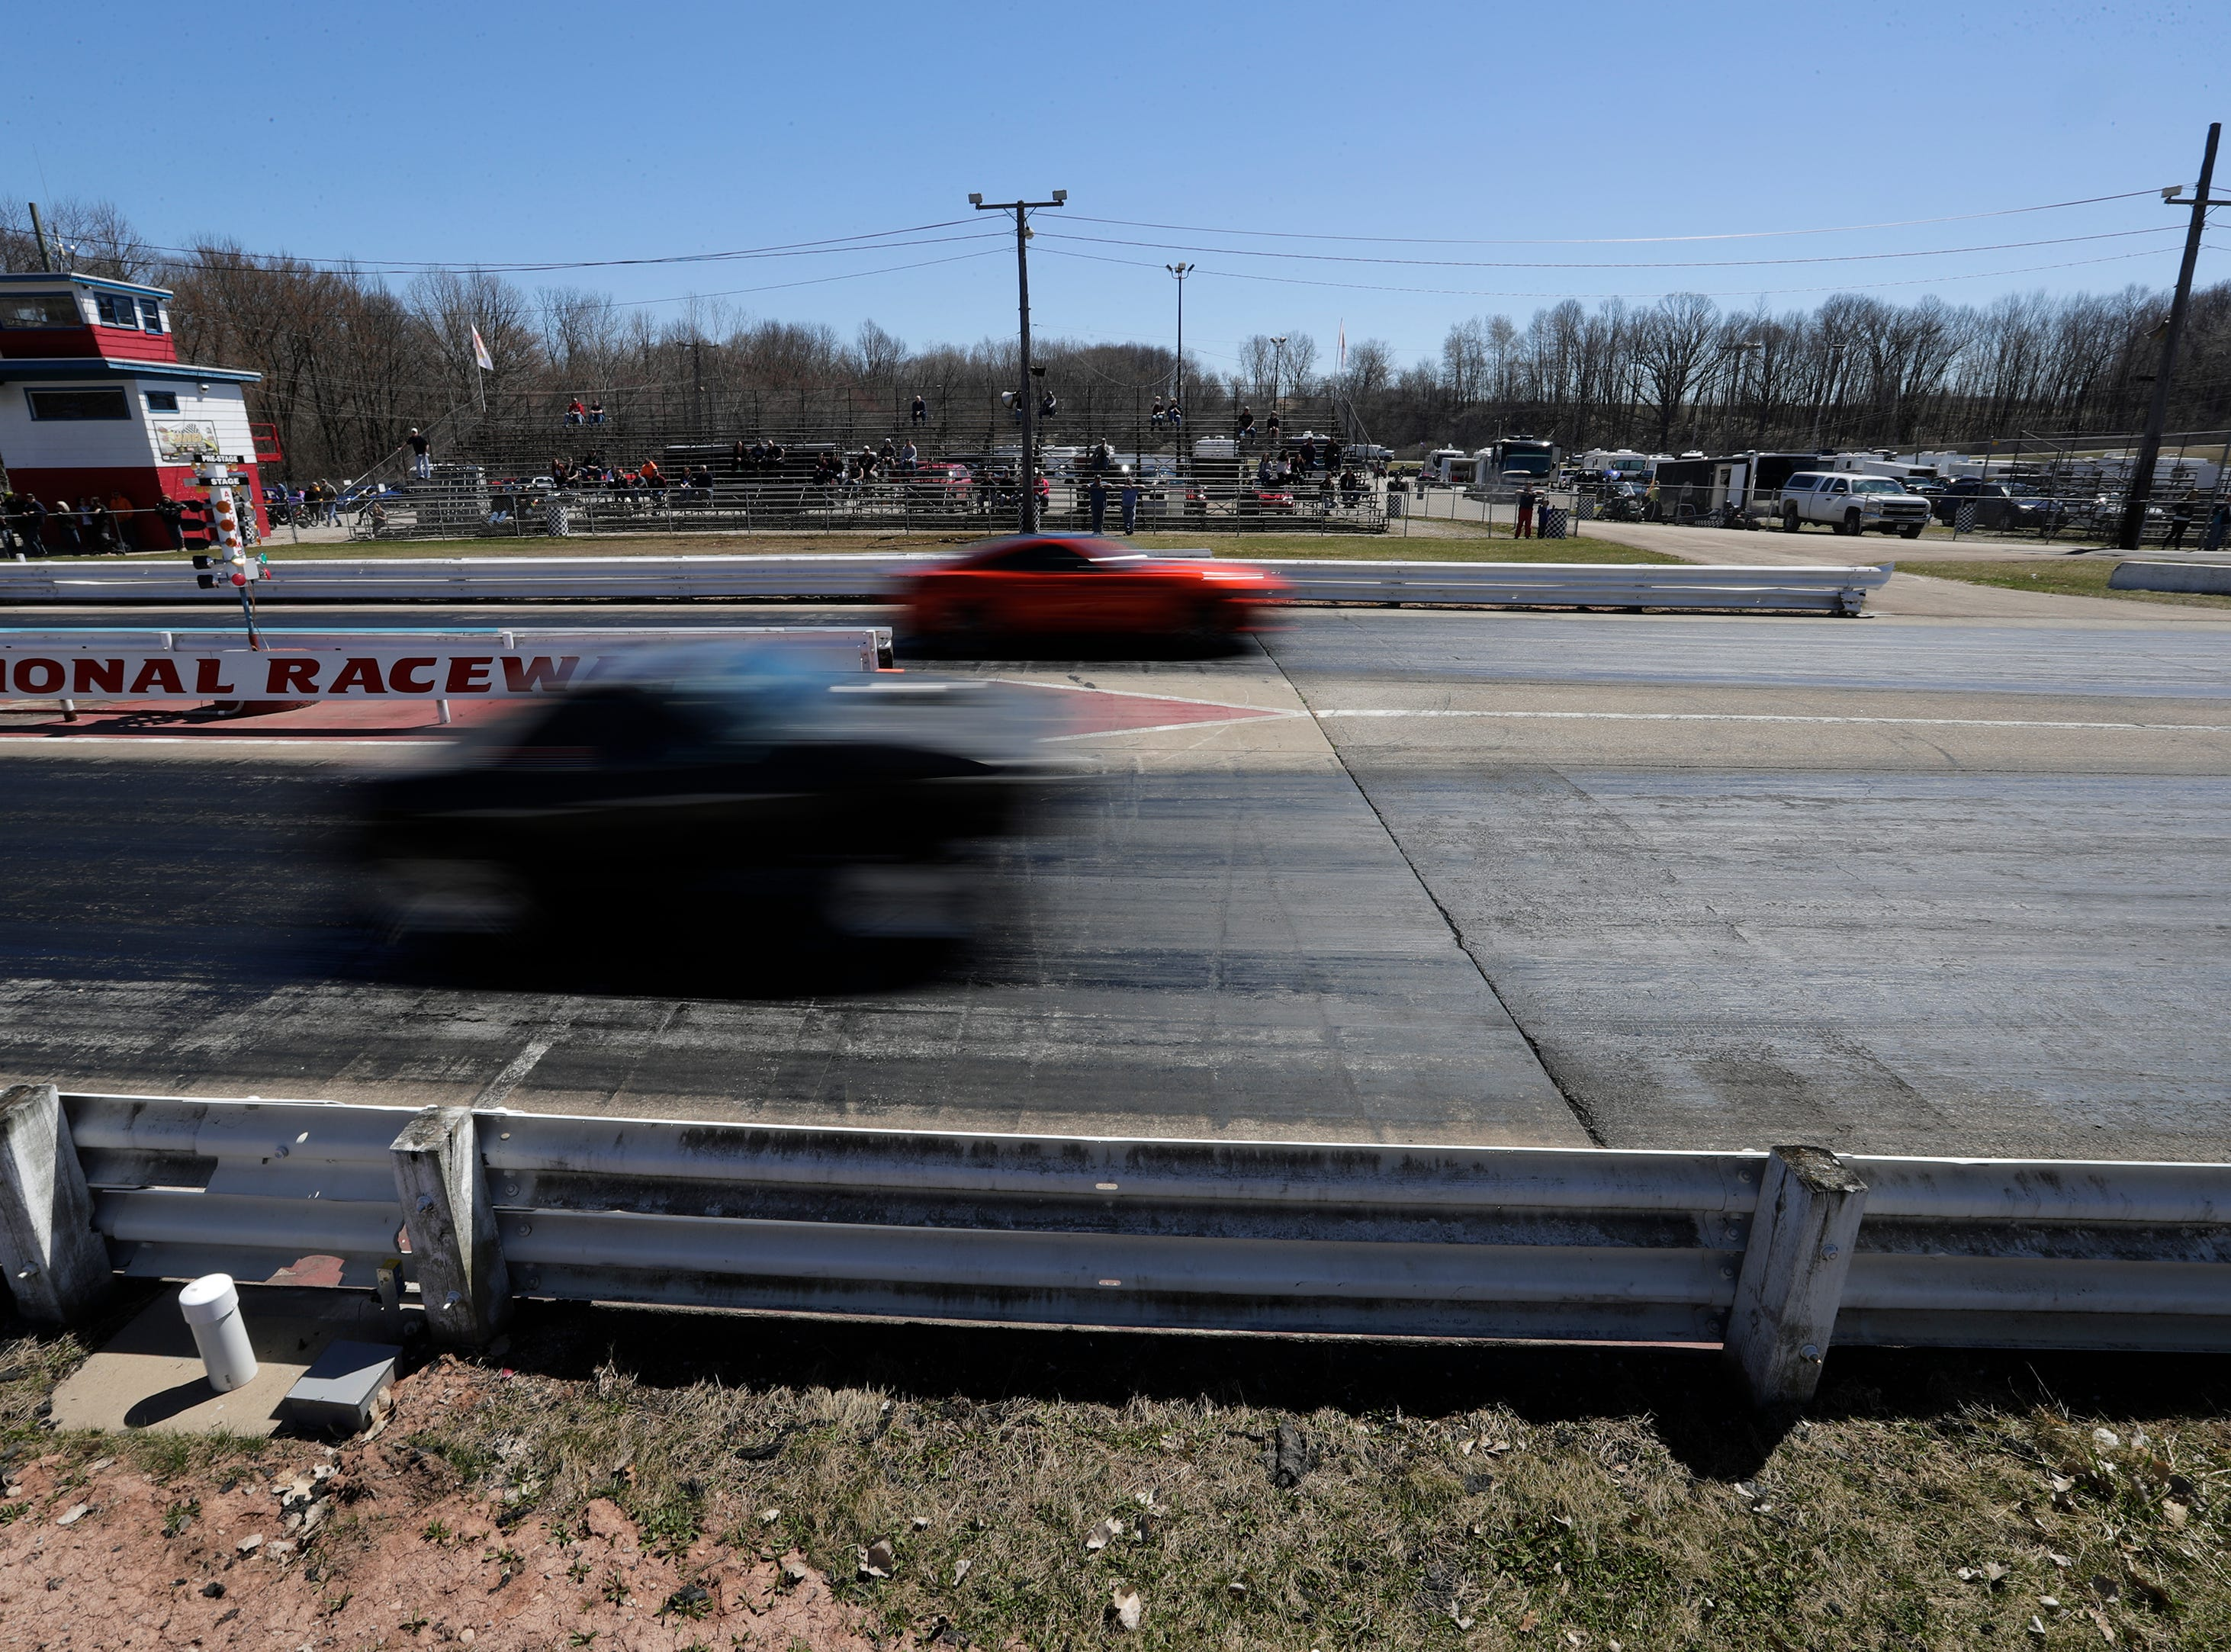 Cars race down the dragstrip during the Wisconsin International Raceway Strip Test & Tune event Saturday, April 20, 2019, in Kaukauna, Wis. Drivers spent the day getting safety inspections, tune ups and test runs on the track for the upcoming season.